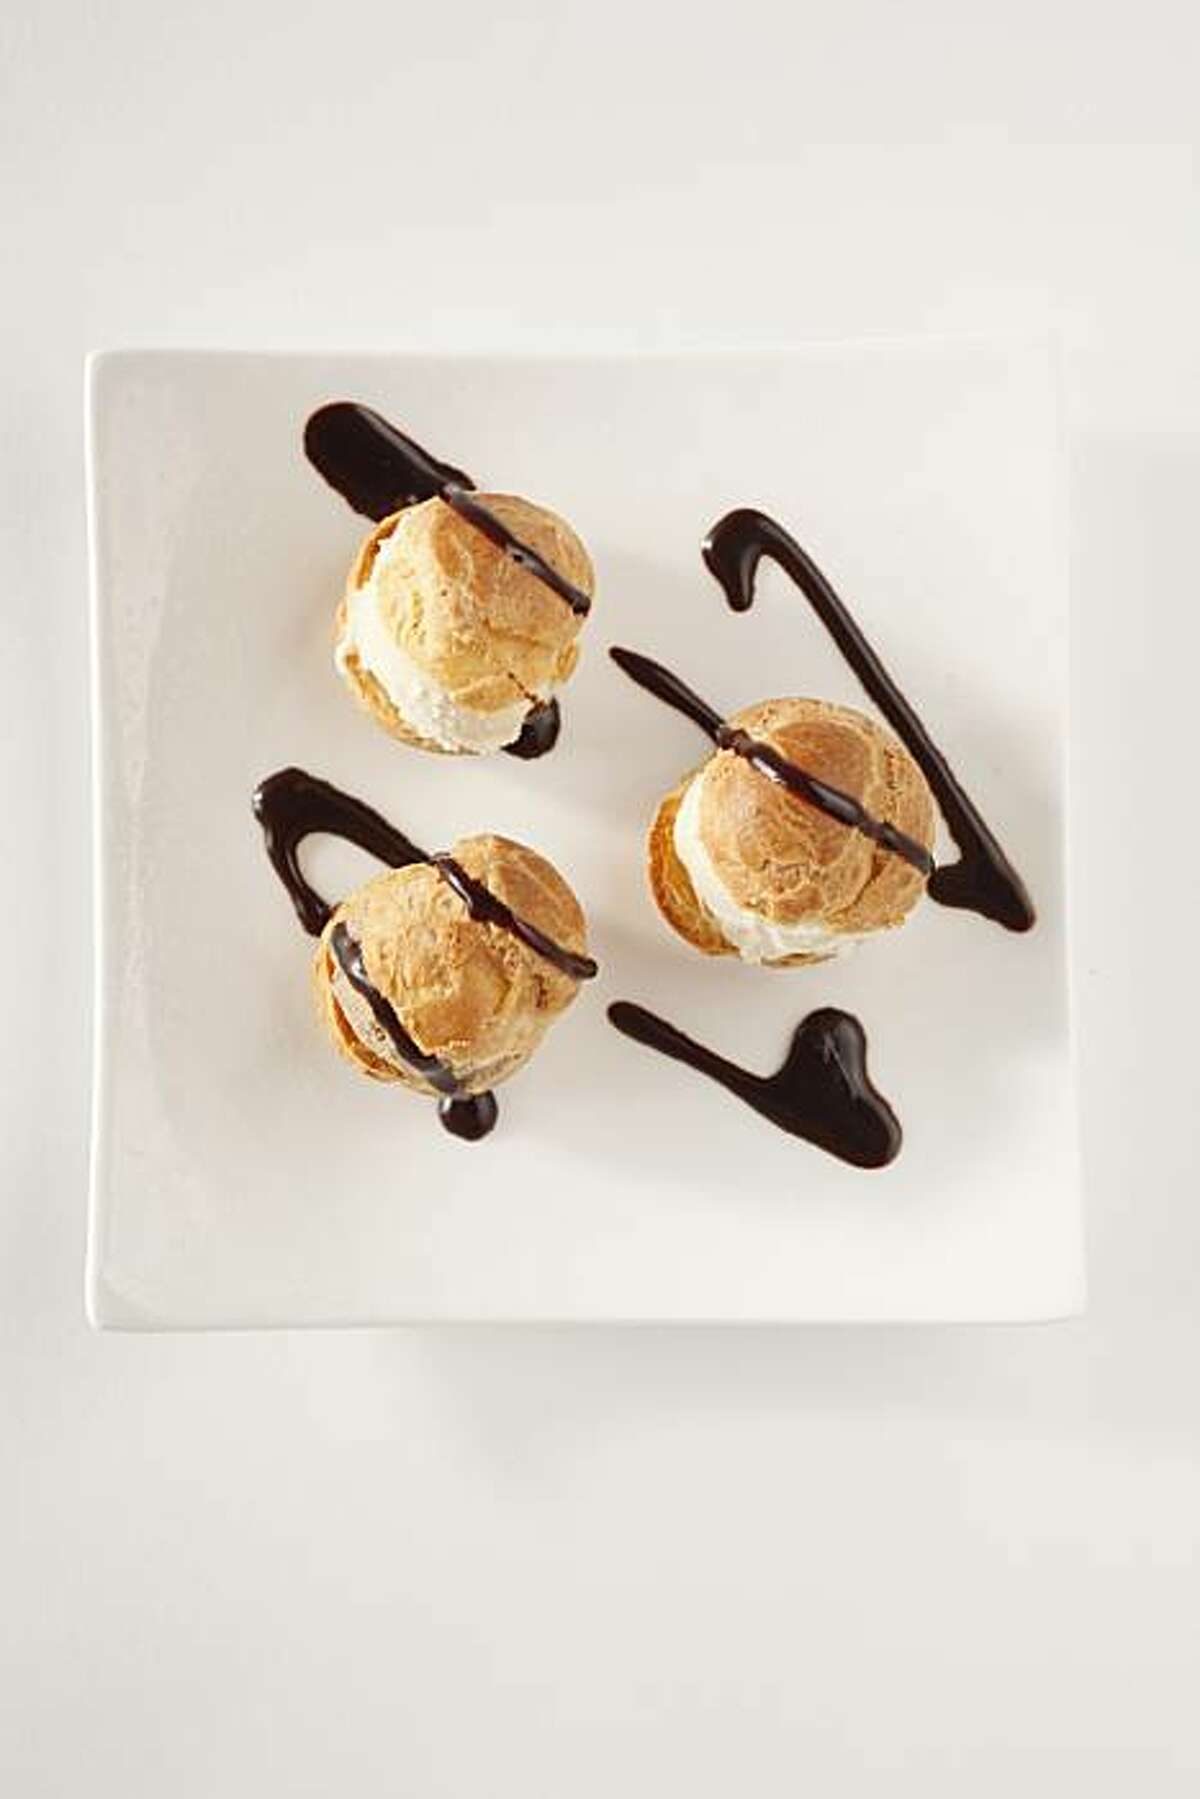 Profiteroles in San Francisco, Calif., on March 24, 2010. Food styled by Pailin Chongchitnant.